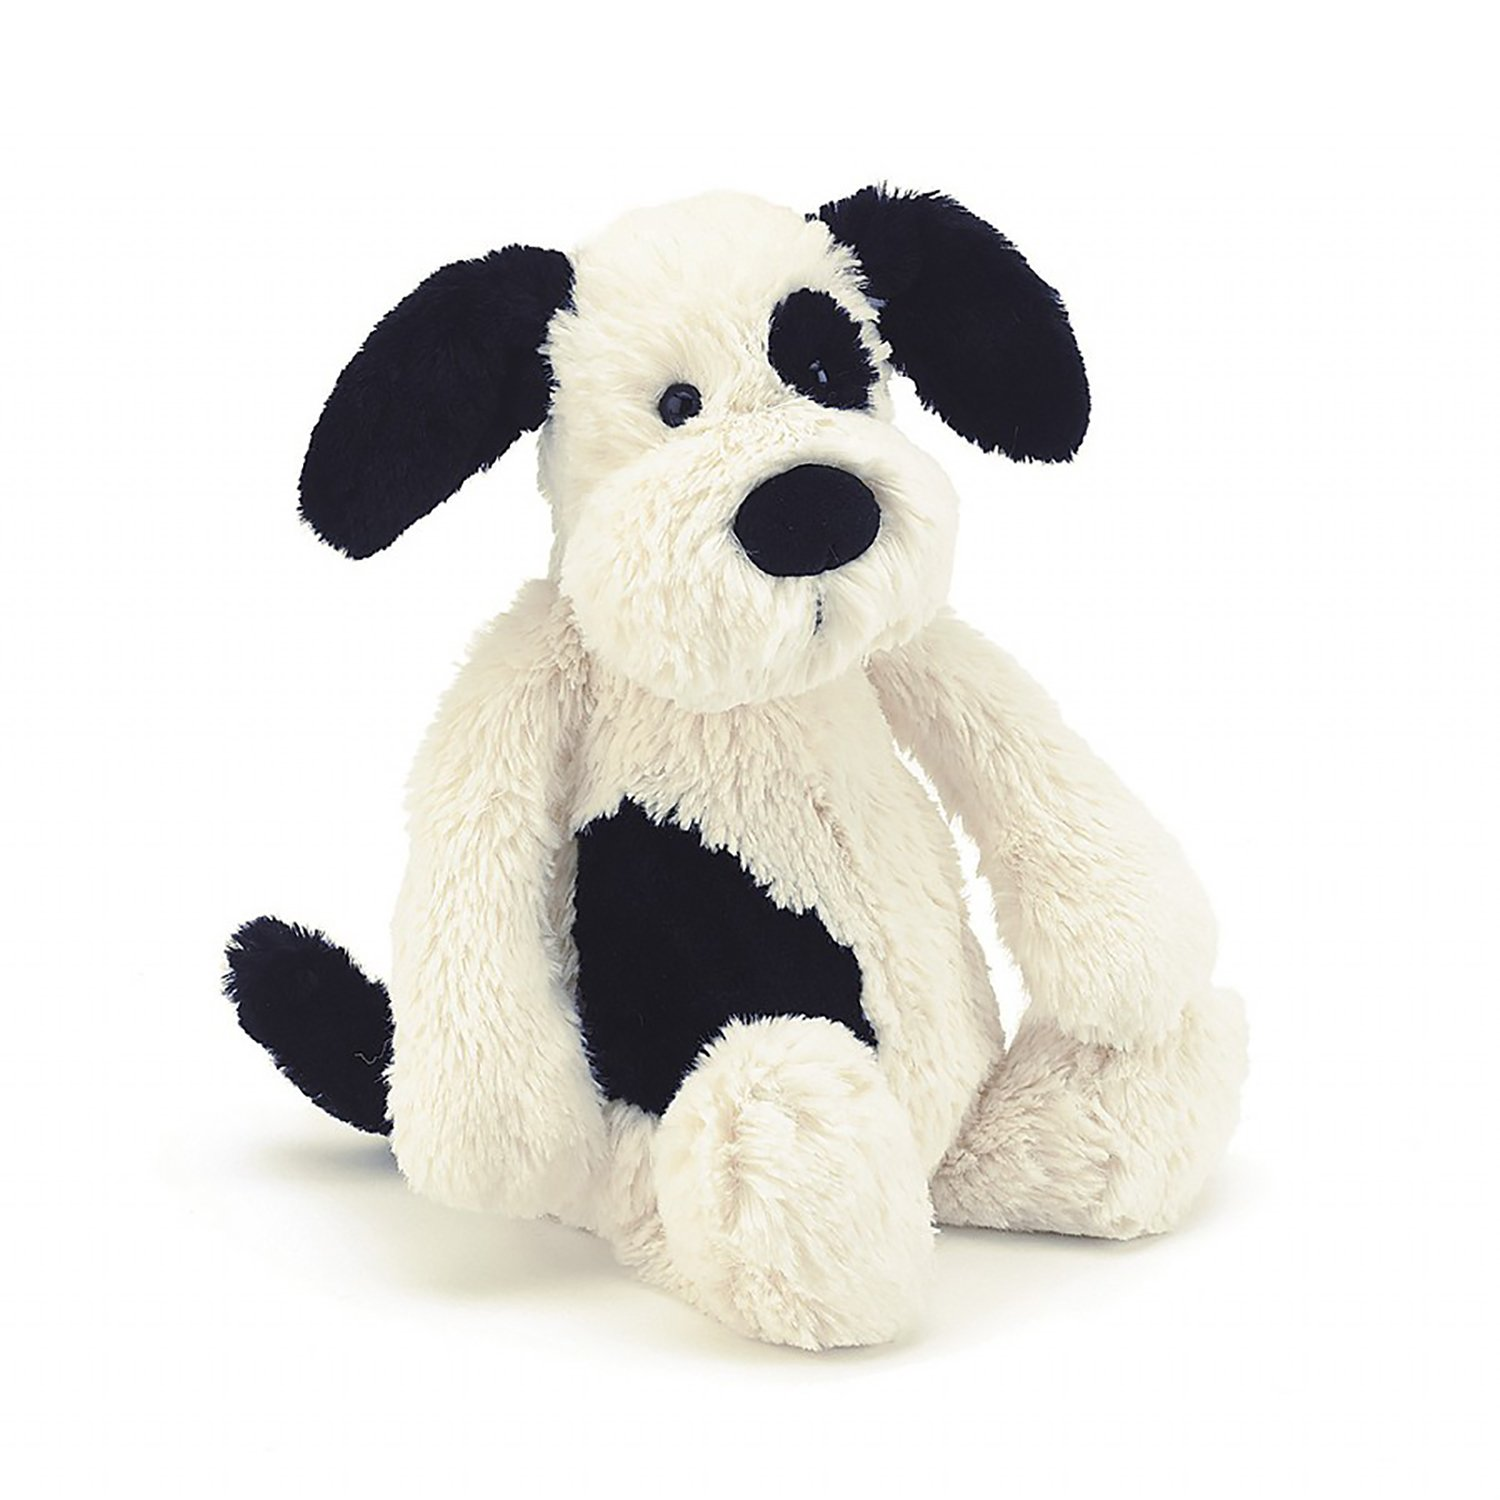 Jellycat Bashful Black and Cream Puppy Stuffed Animal, Really Big, 31 inches by Jellycat